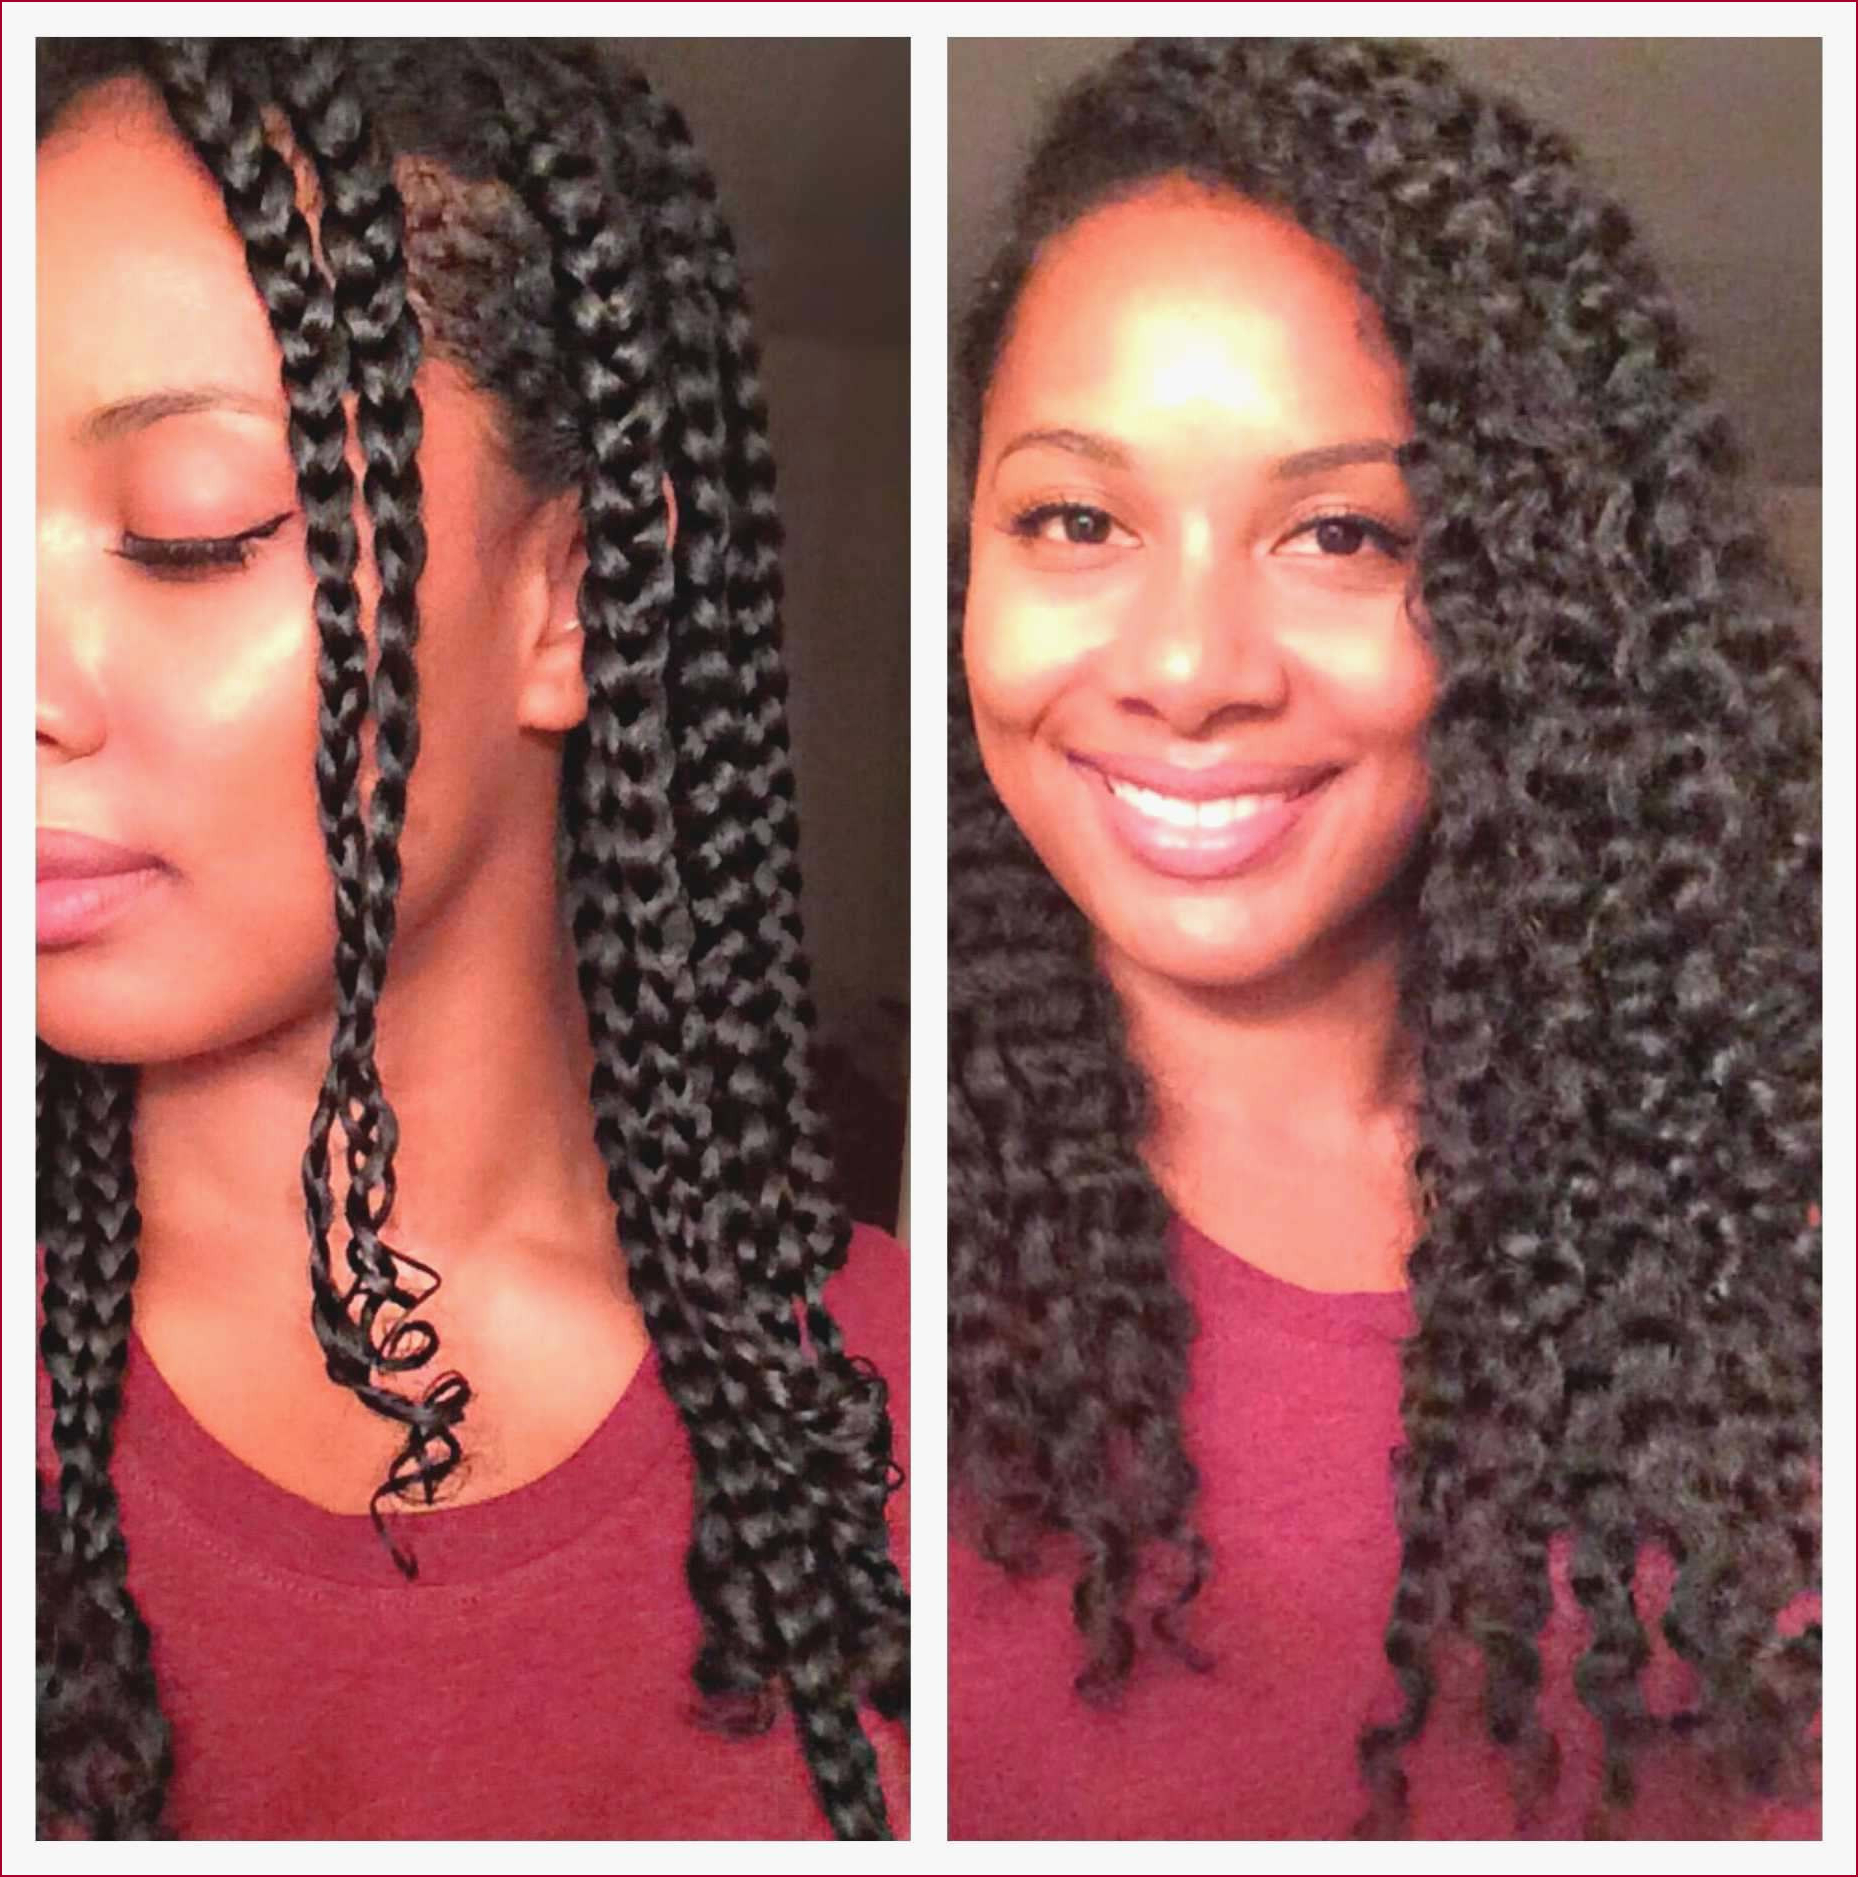 Micro Braids Hairstyles Wavy Micro Braids Archives Getinlope Regarding Most Up To Date Micro Braid Hairstyles With Curls (View 13 of 20)